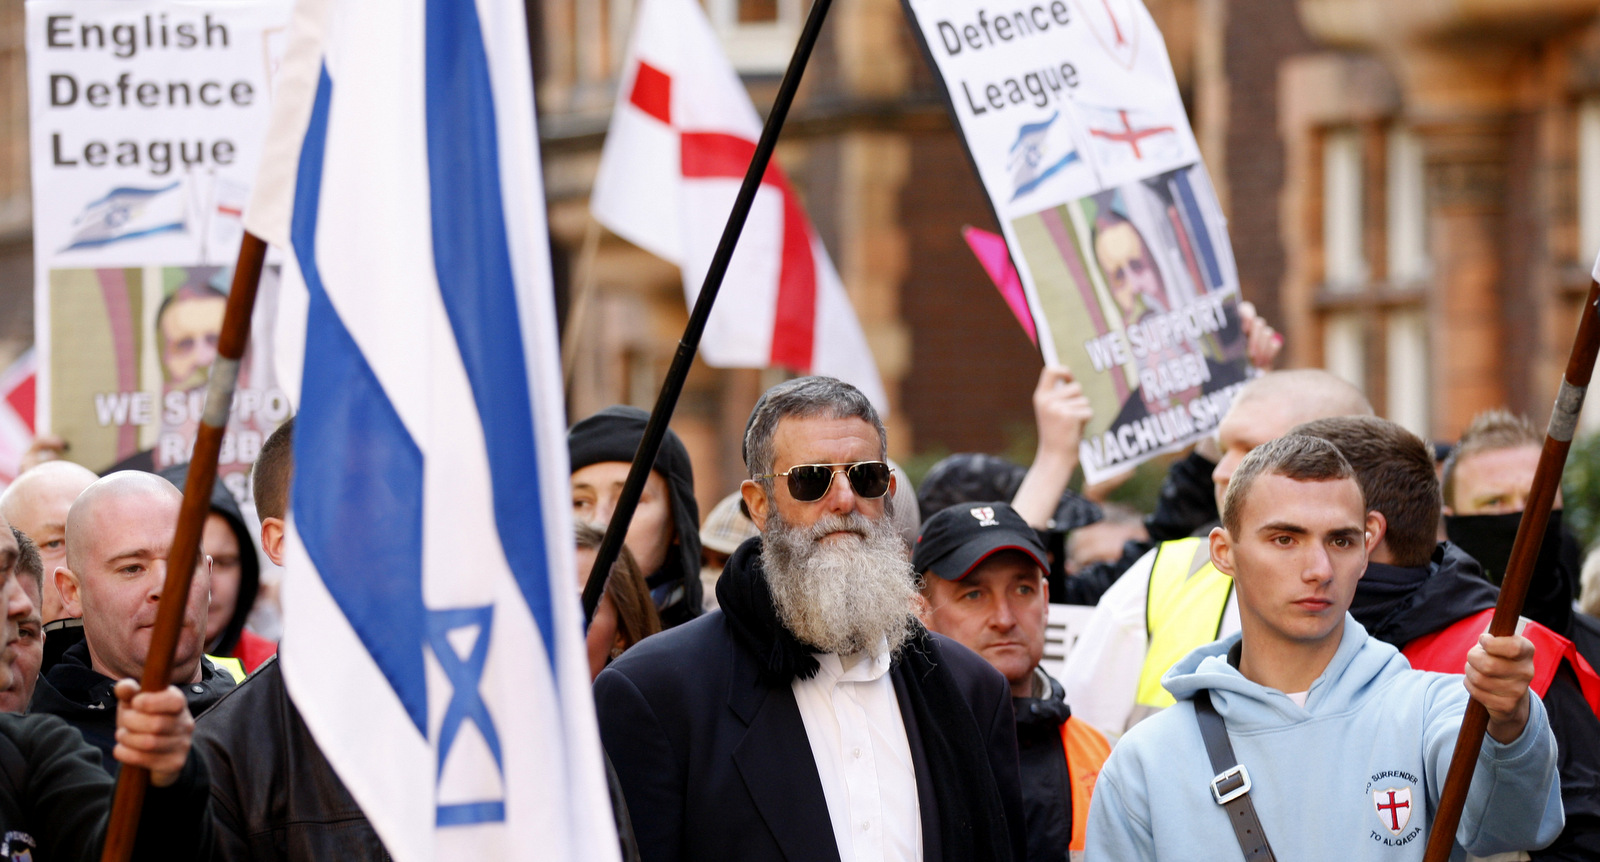 Rabbi Nachum Shifren, center, marches with white nationalist English Defence League (EDL) supporters to an EDL rally against what they claim is the Islamification of the UK and in support of Israel, outside the Israeli Embassy in London, Oct. 24, 2010. (AP/Sang Tan)